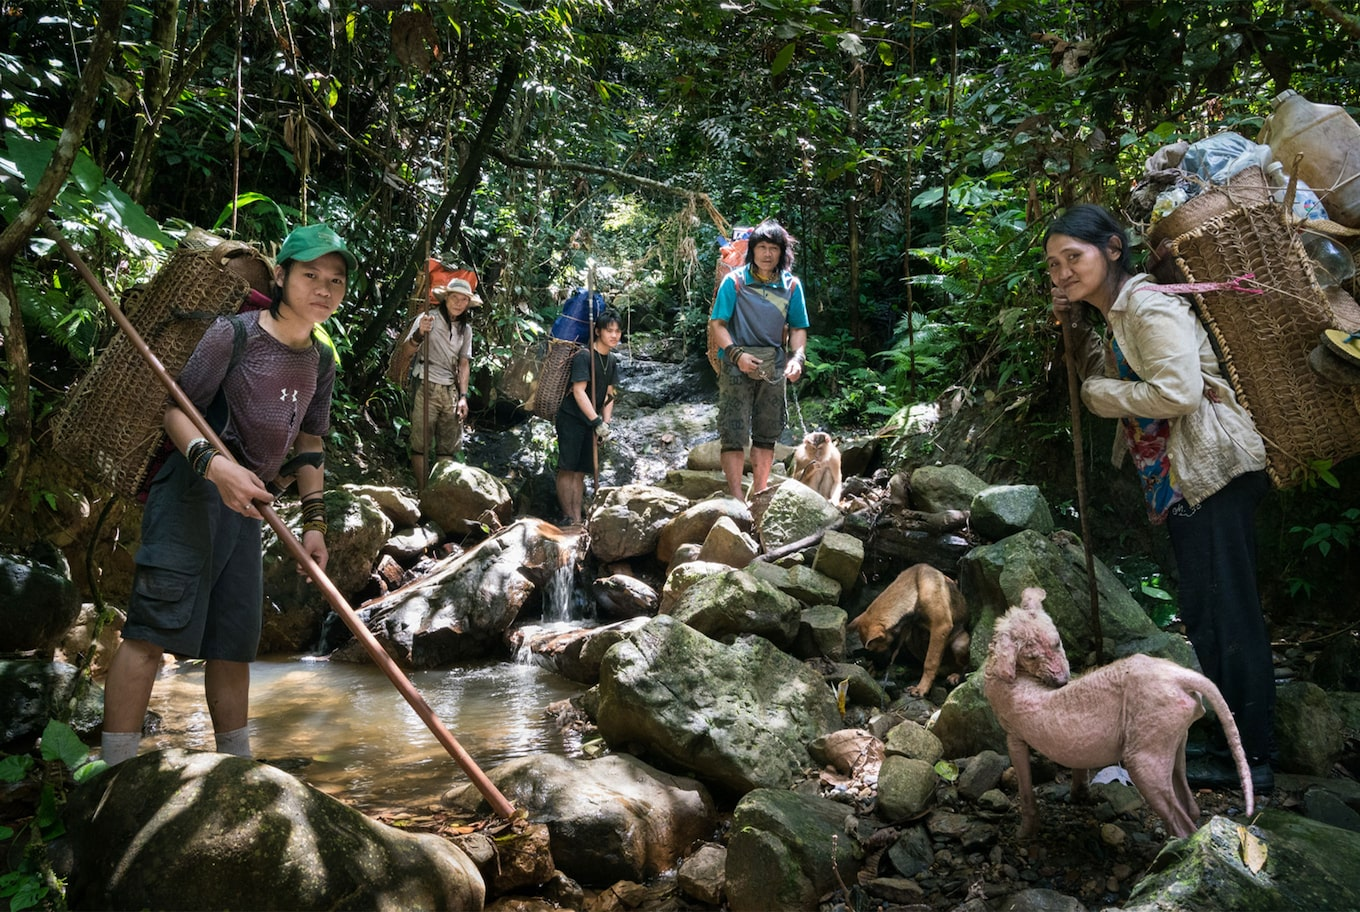 Tomas Wuethrich sony alpha 9 group of tribeswomen stand by a jungle pond with wicker baskets on their backs